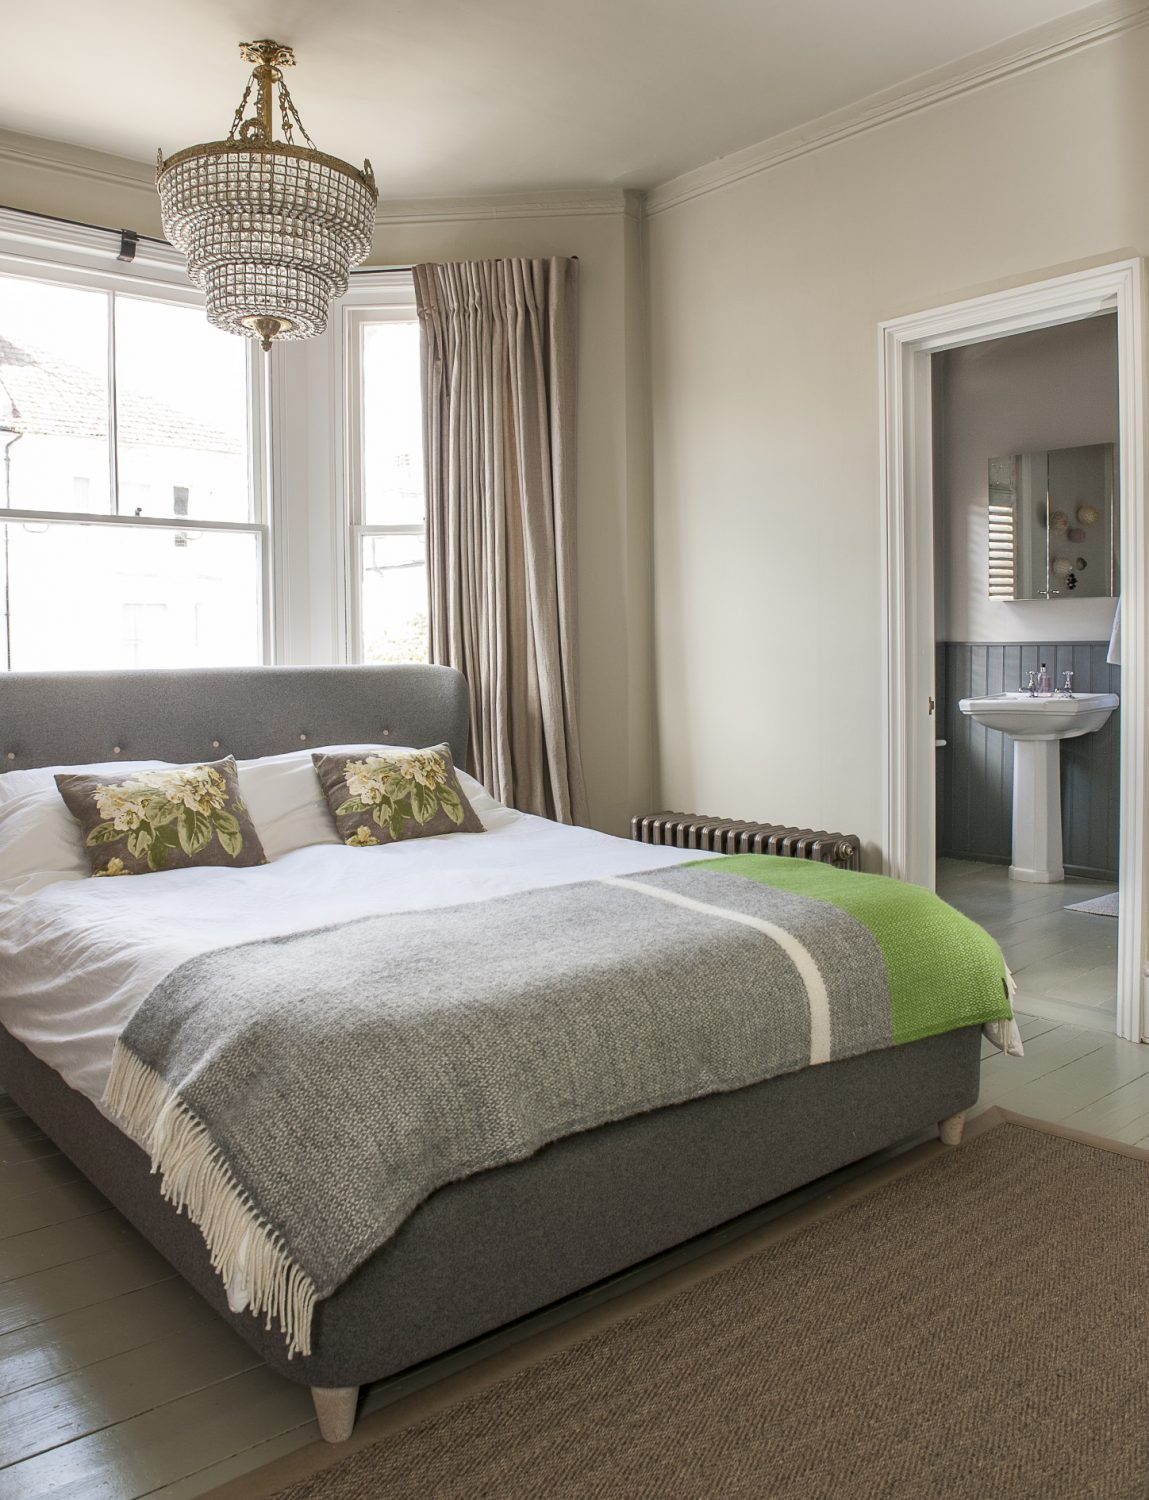 In the master bedroom at the front of the house, the bed is tucked into the bay of the window, maximising the space available and allowing space for the en suite bathroom